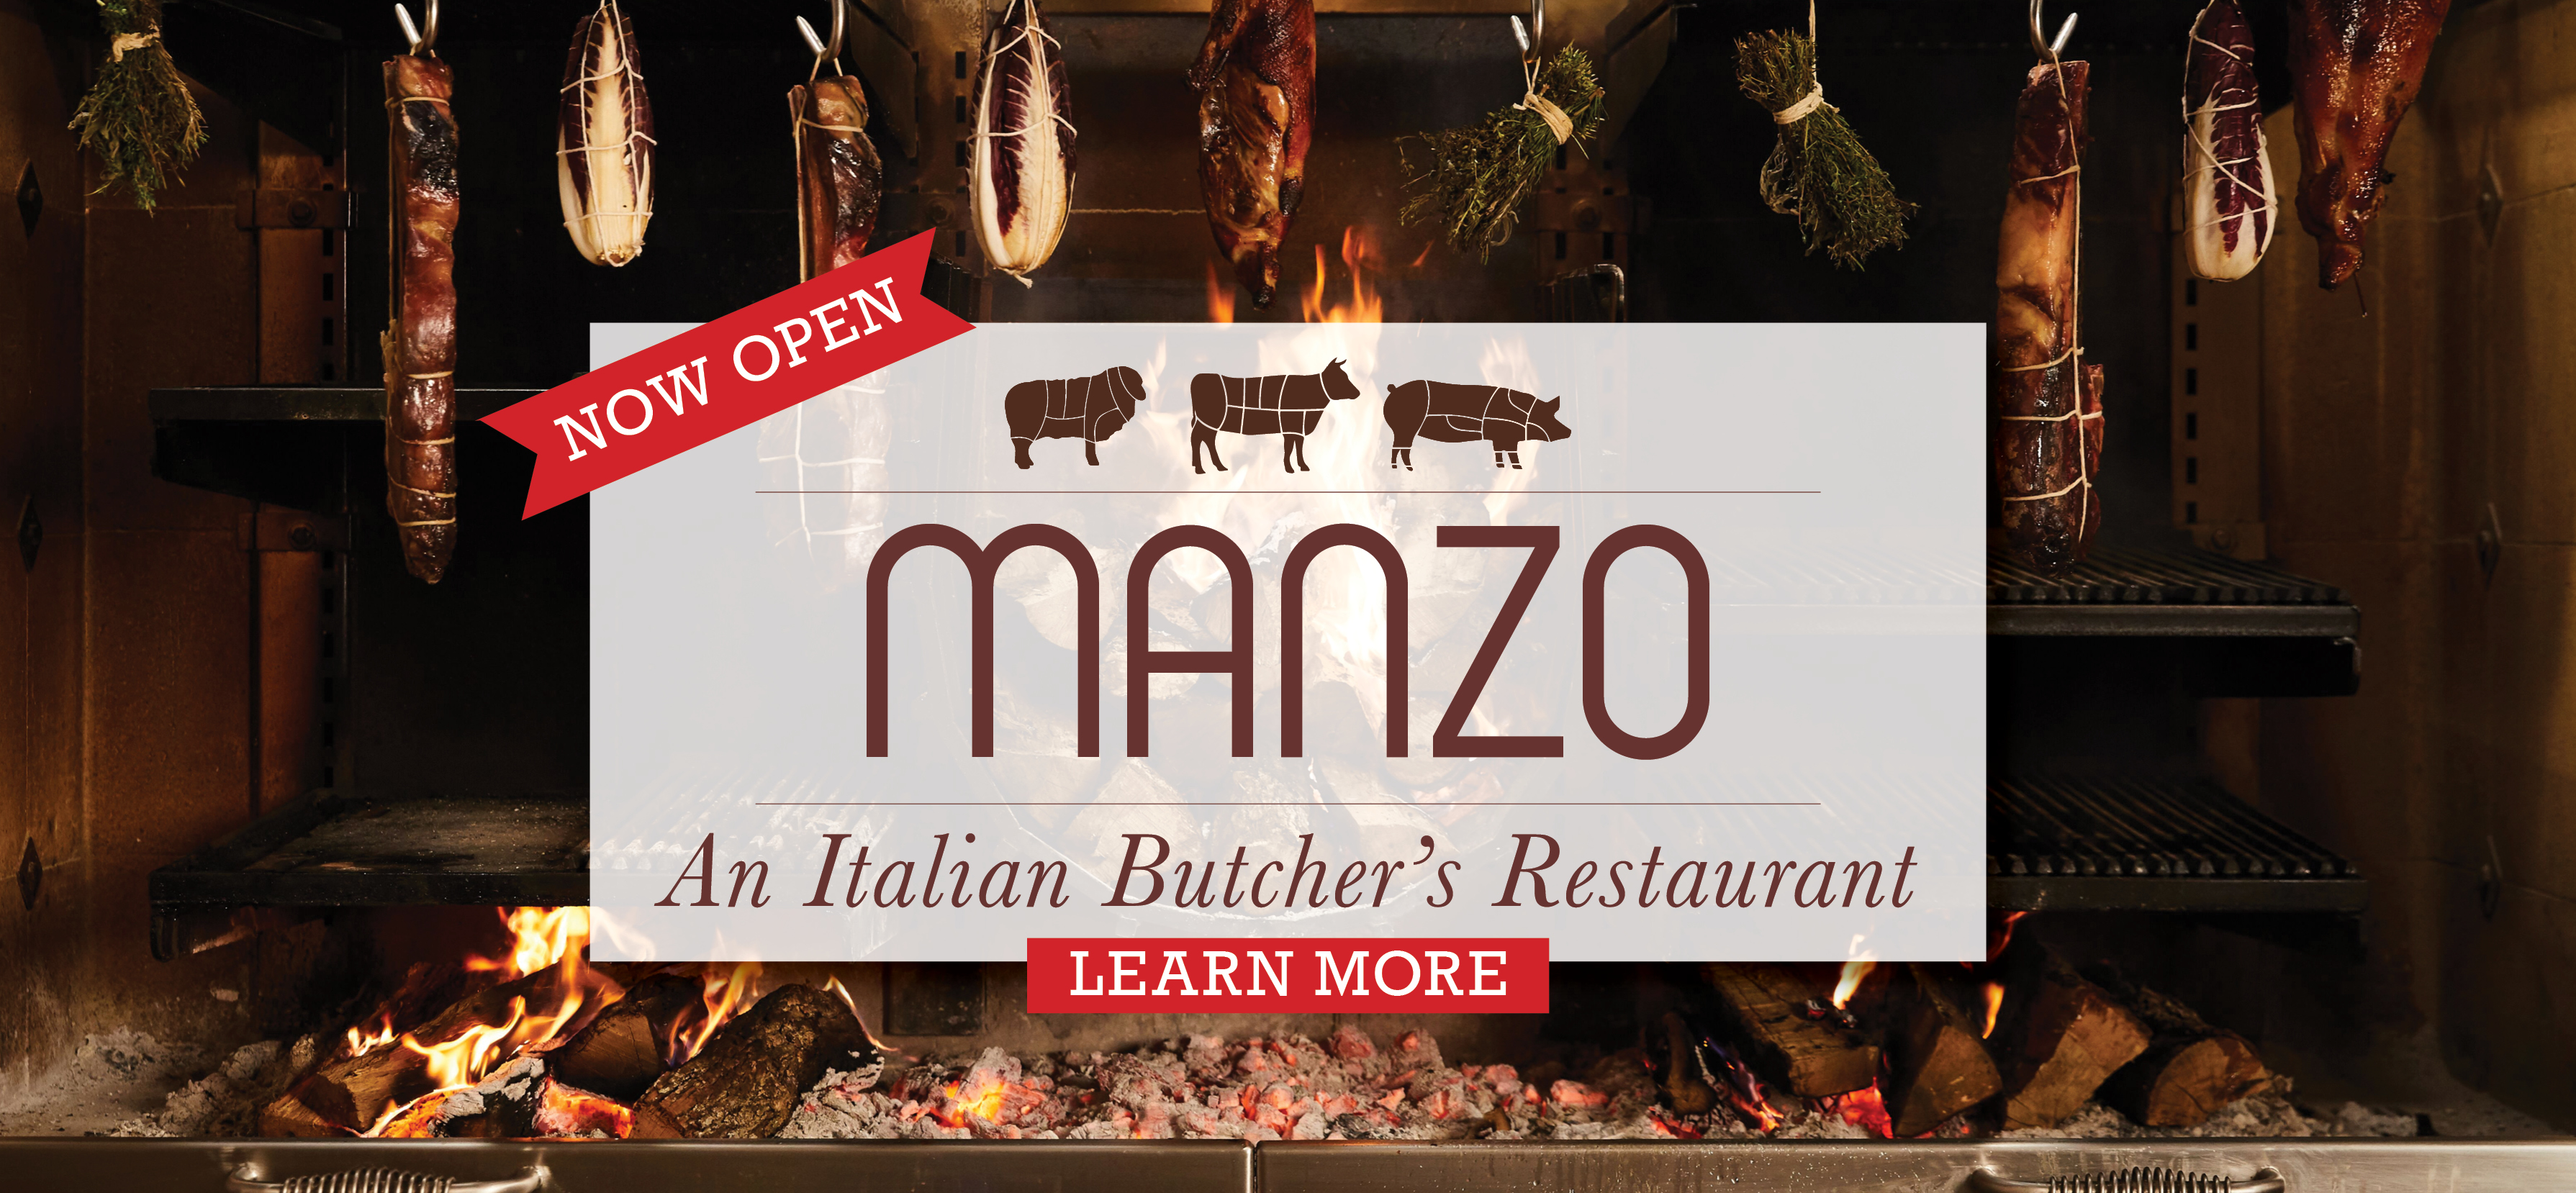 Book Your Table at Manzo